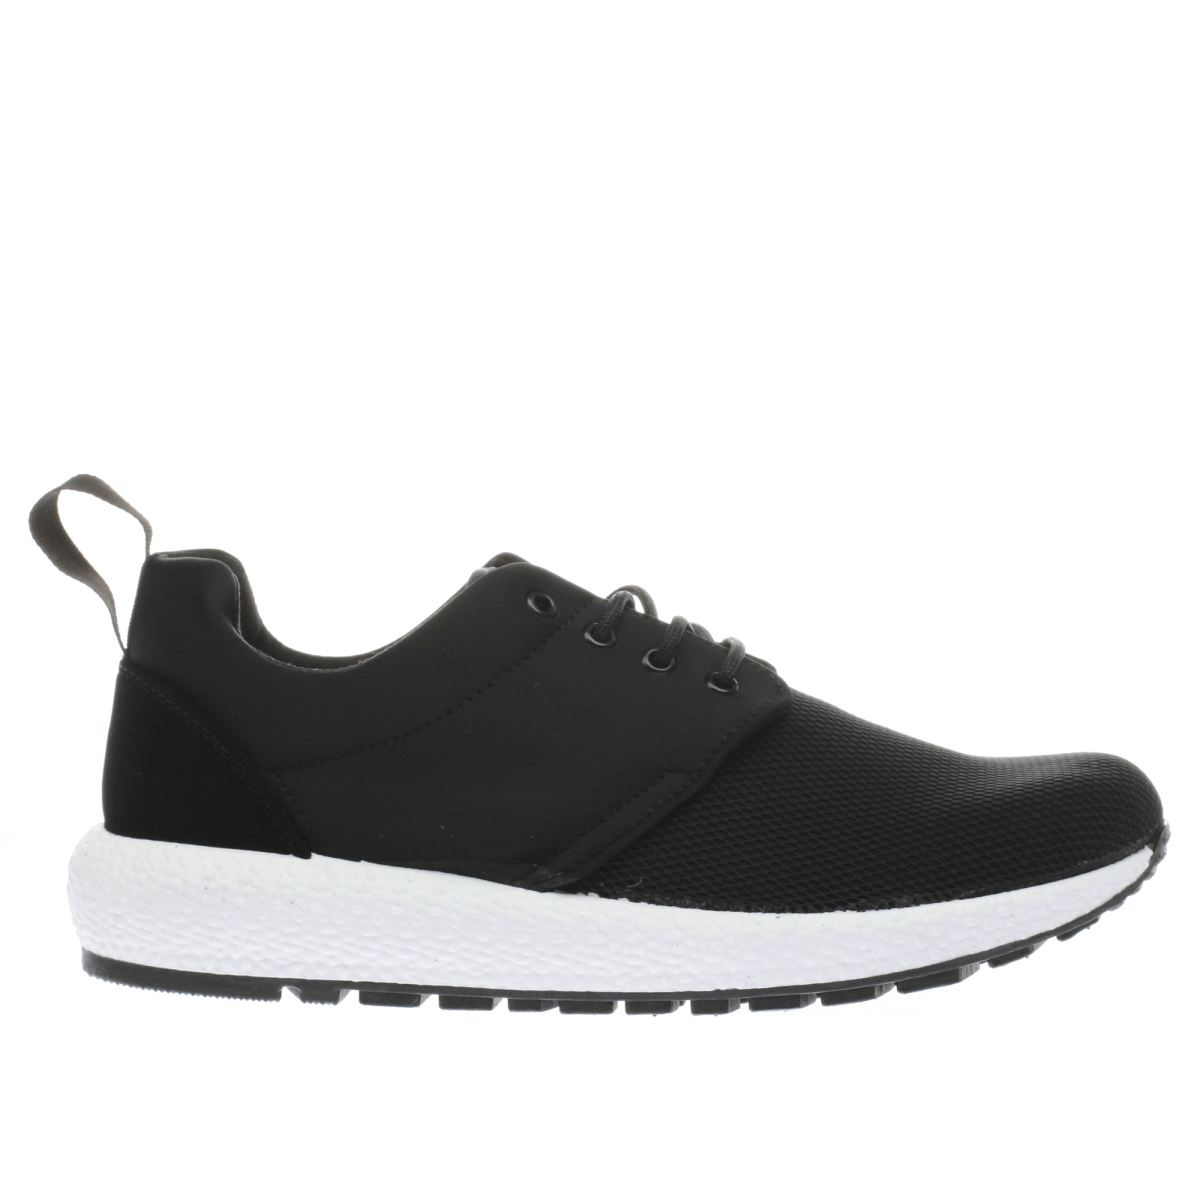 schuh black easy peasy trainers